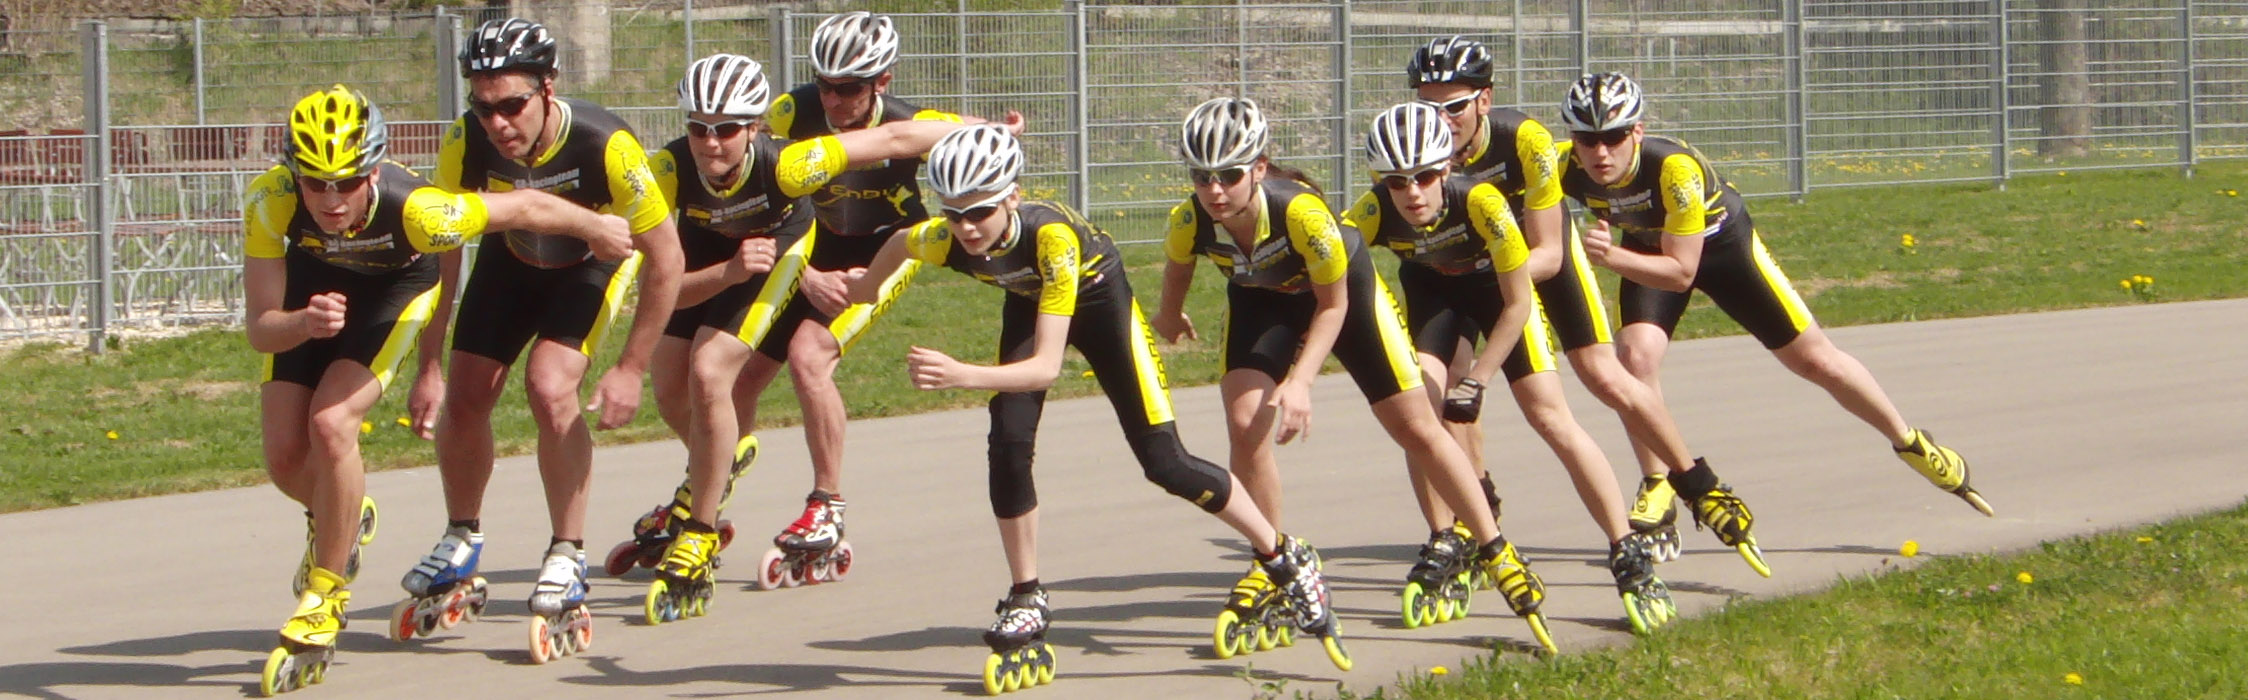 Trainingscamp 2011